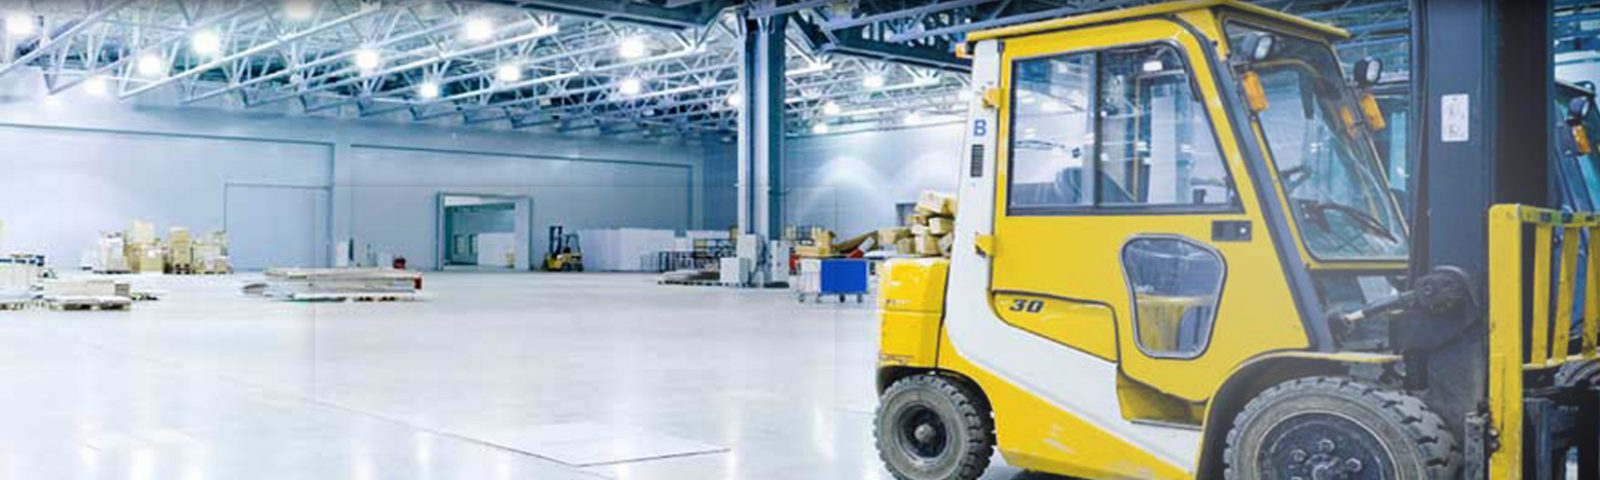 facilities maintenance products